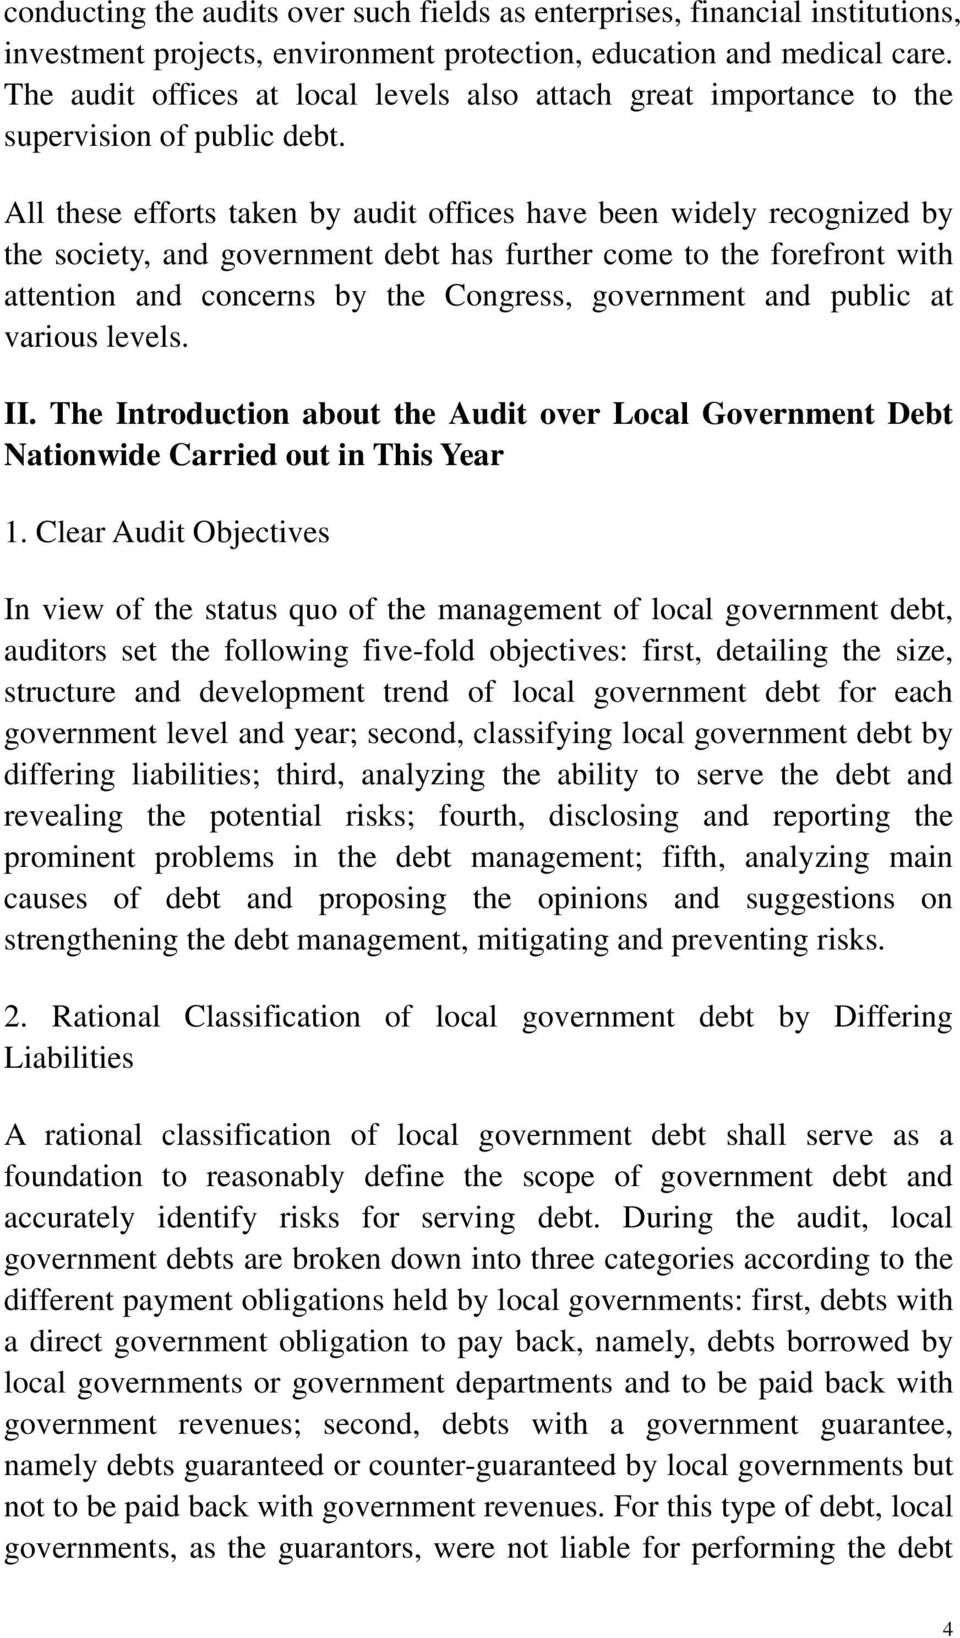 All these efforts taken by audit offices have been widely recognized by the society, and government debt has further come to the forefront with attention and concerns by the Congress, government and